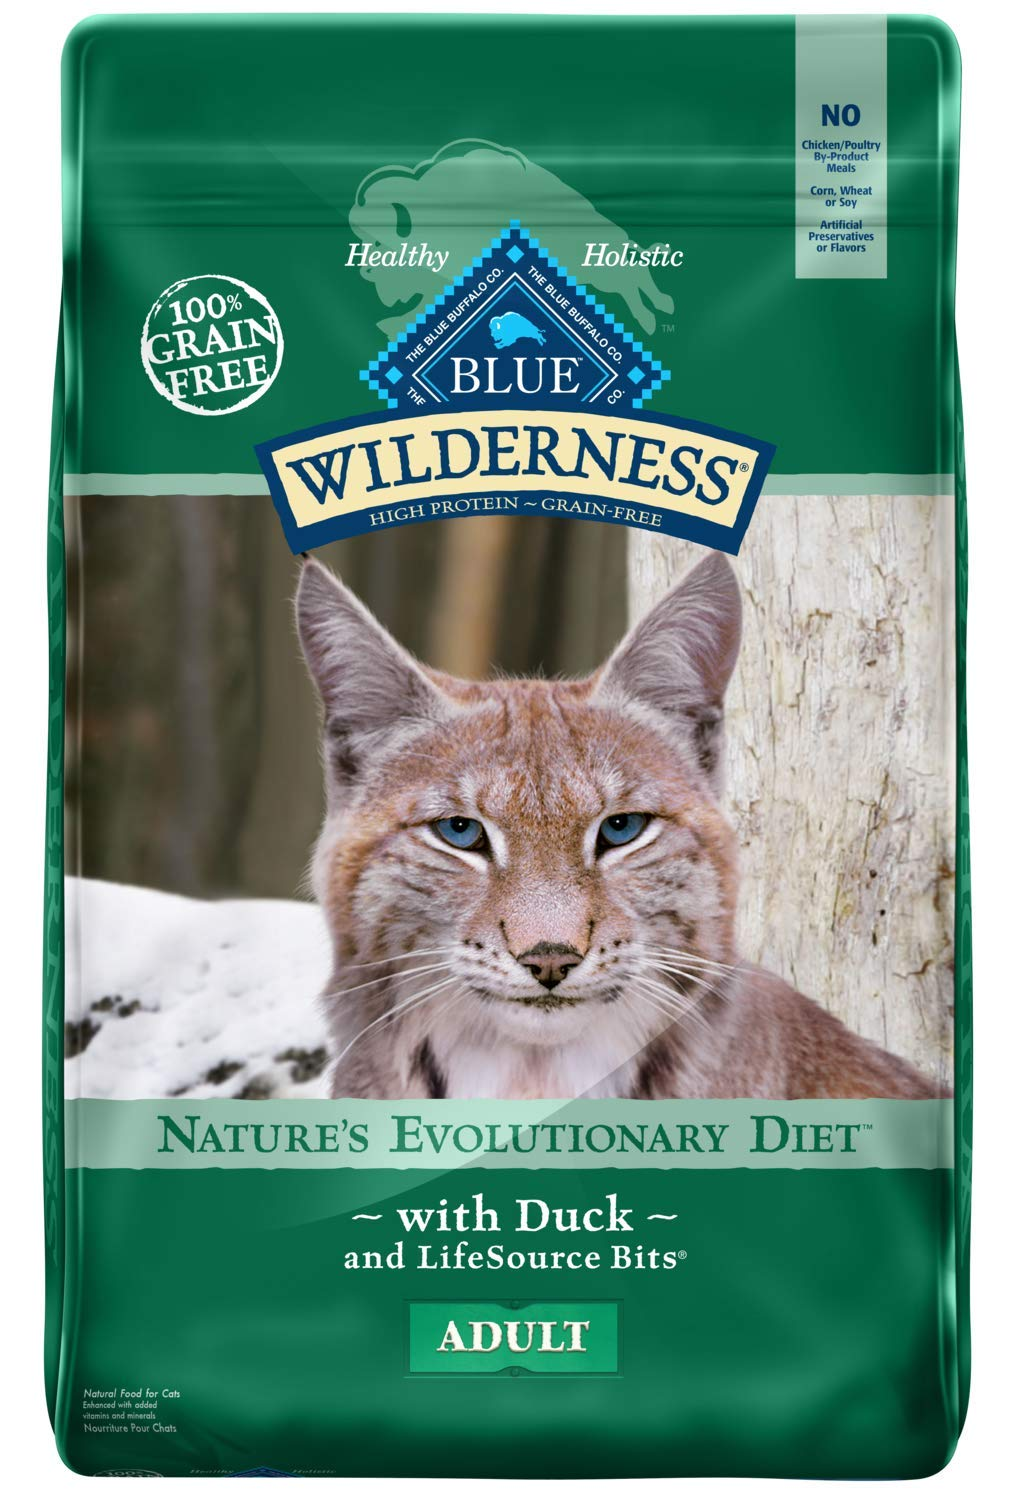 Blue Buffalo Wilderness High Protein Grain Free, Natural Adult Dry Cat Food, Duck 11-lb by Blue Buffalo